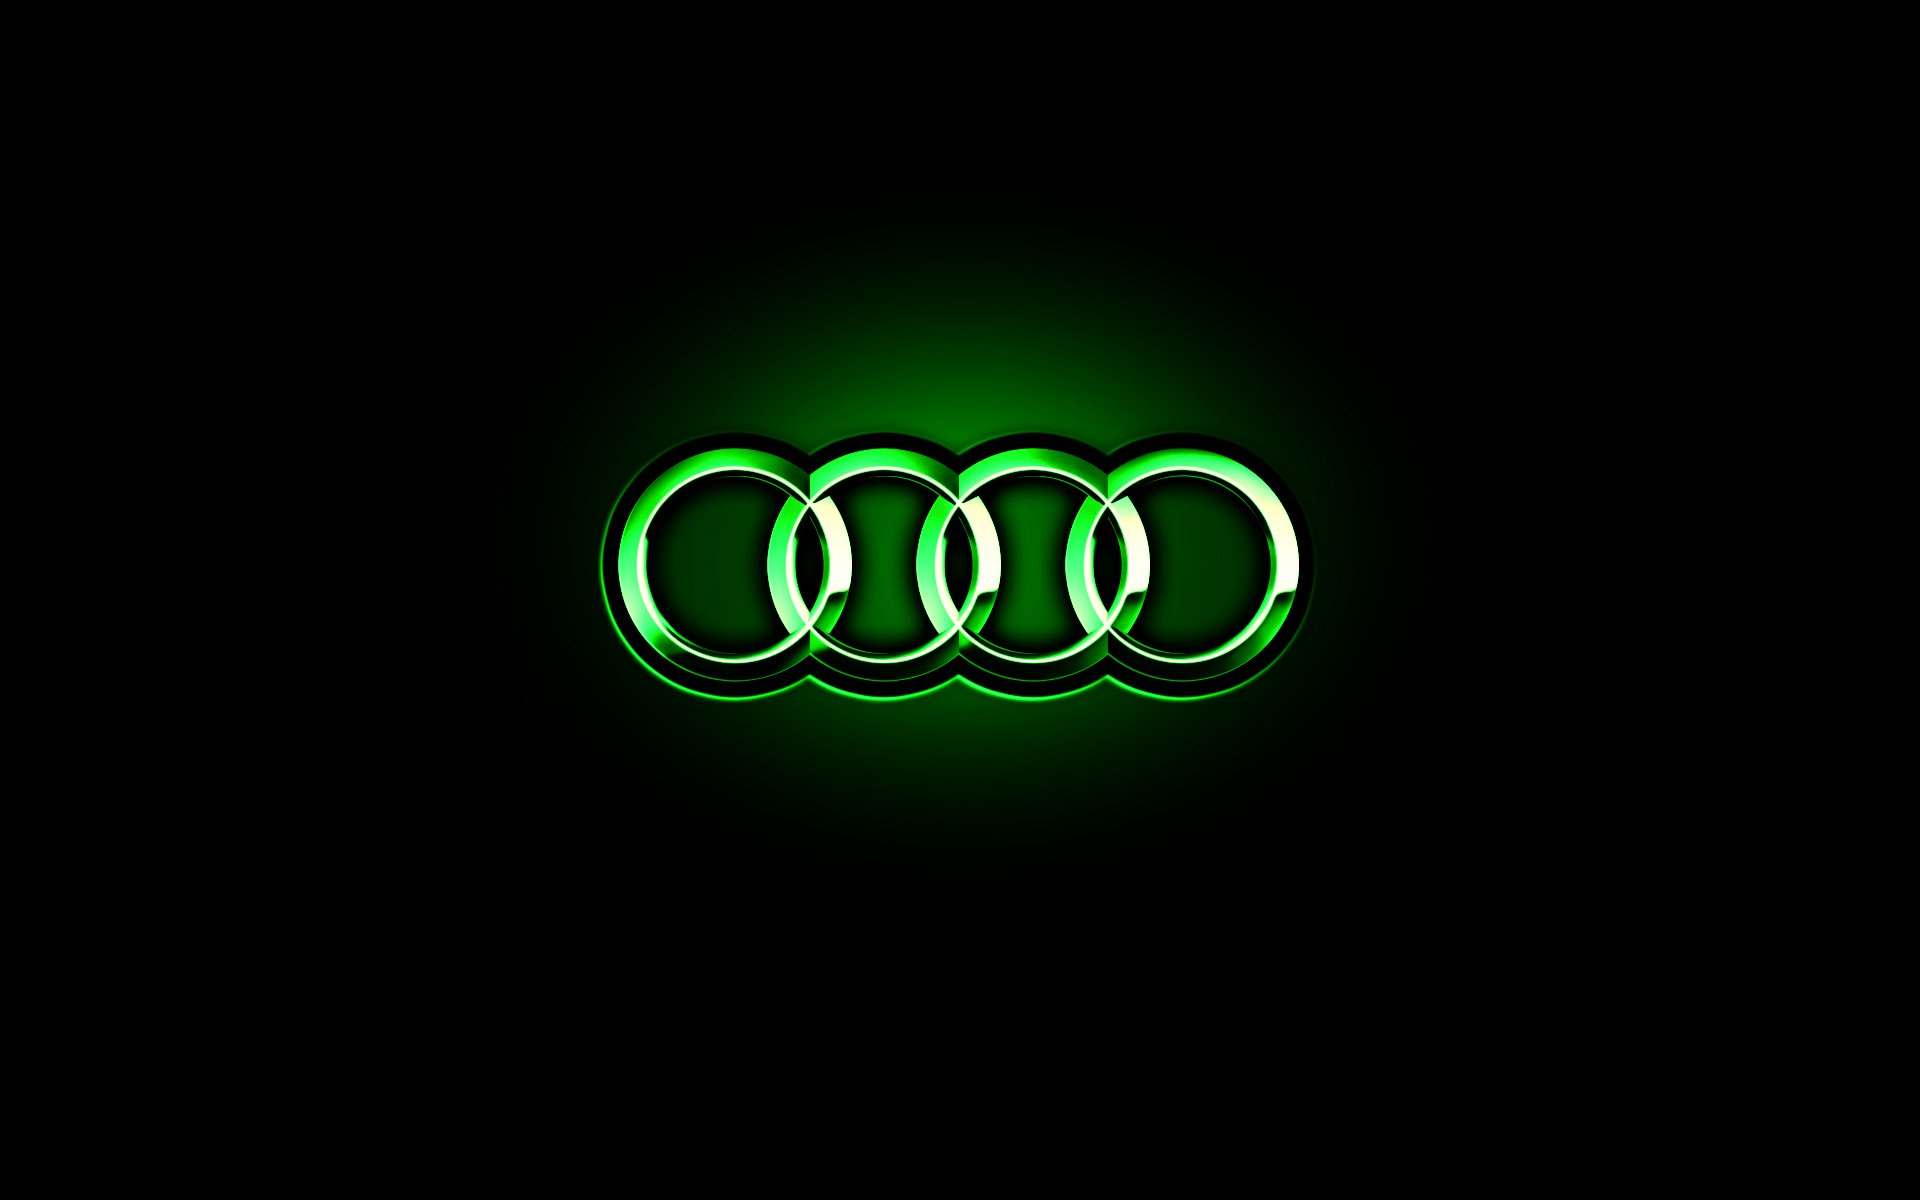 Audi Car Logo Wallpaper Audi Logo Hd Wallpaper